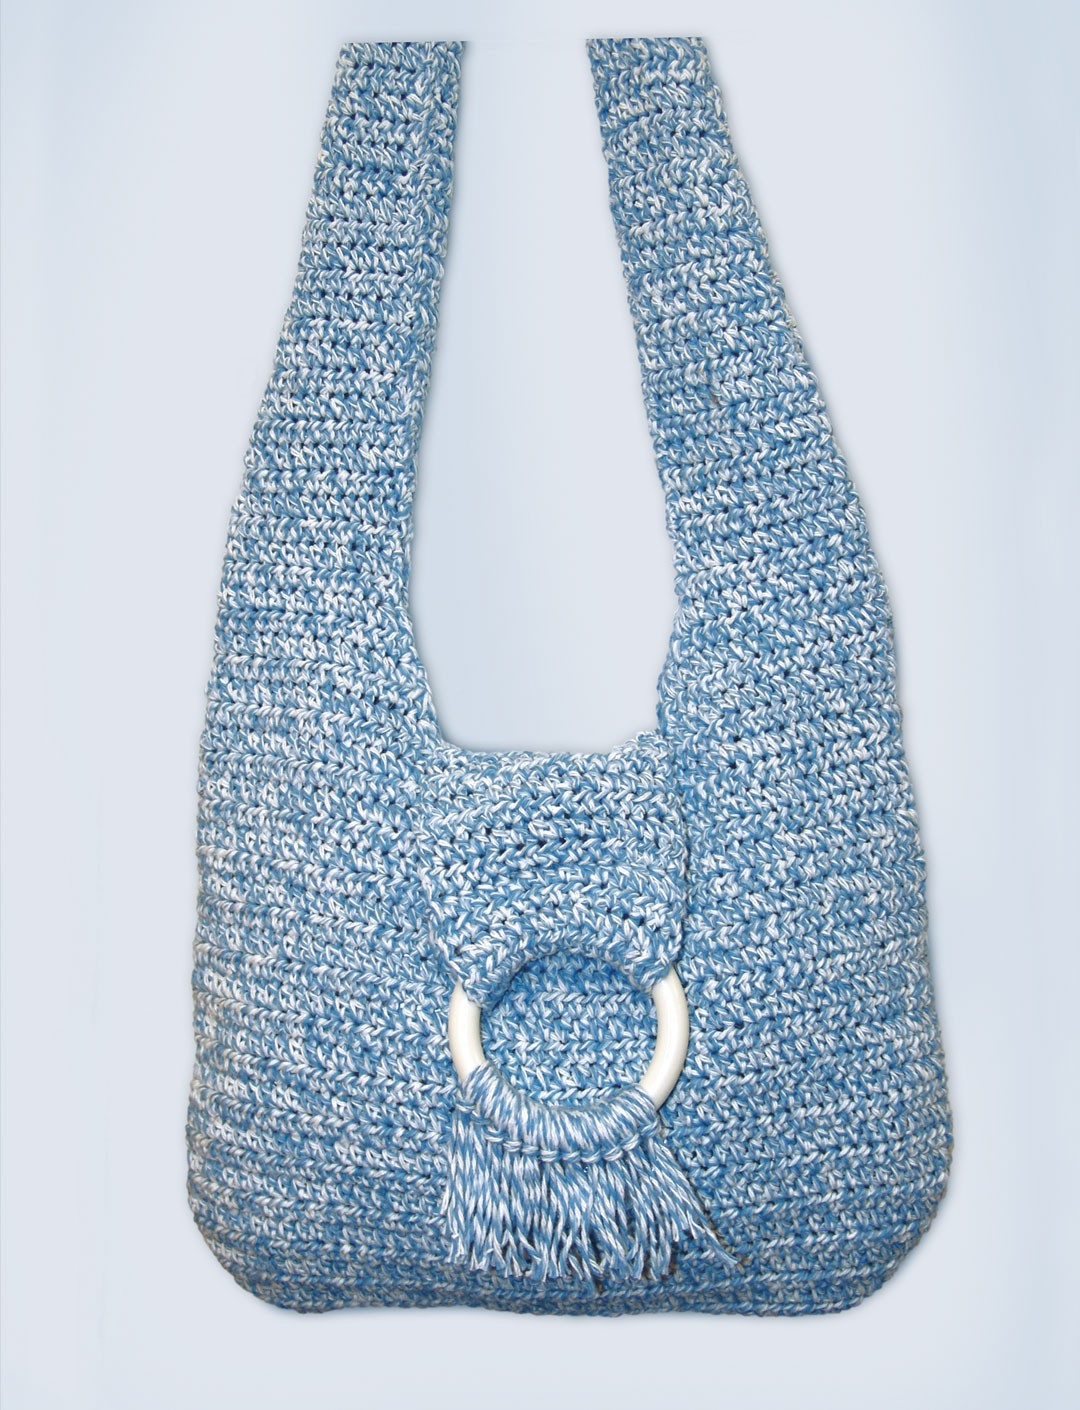 Crochet Hobo Bag Pattern : Hobo Bag